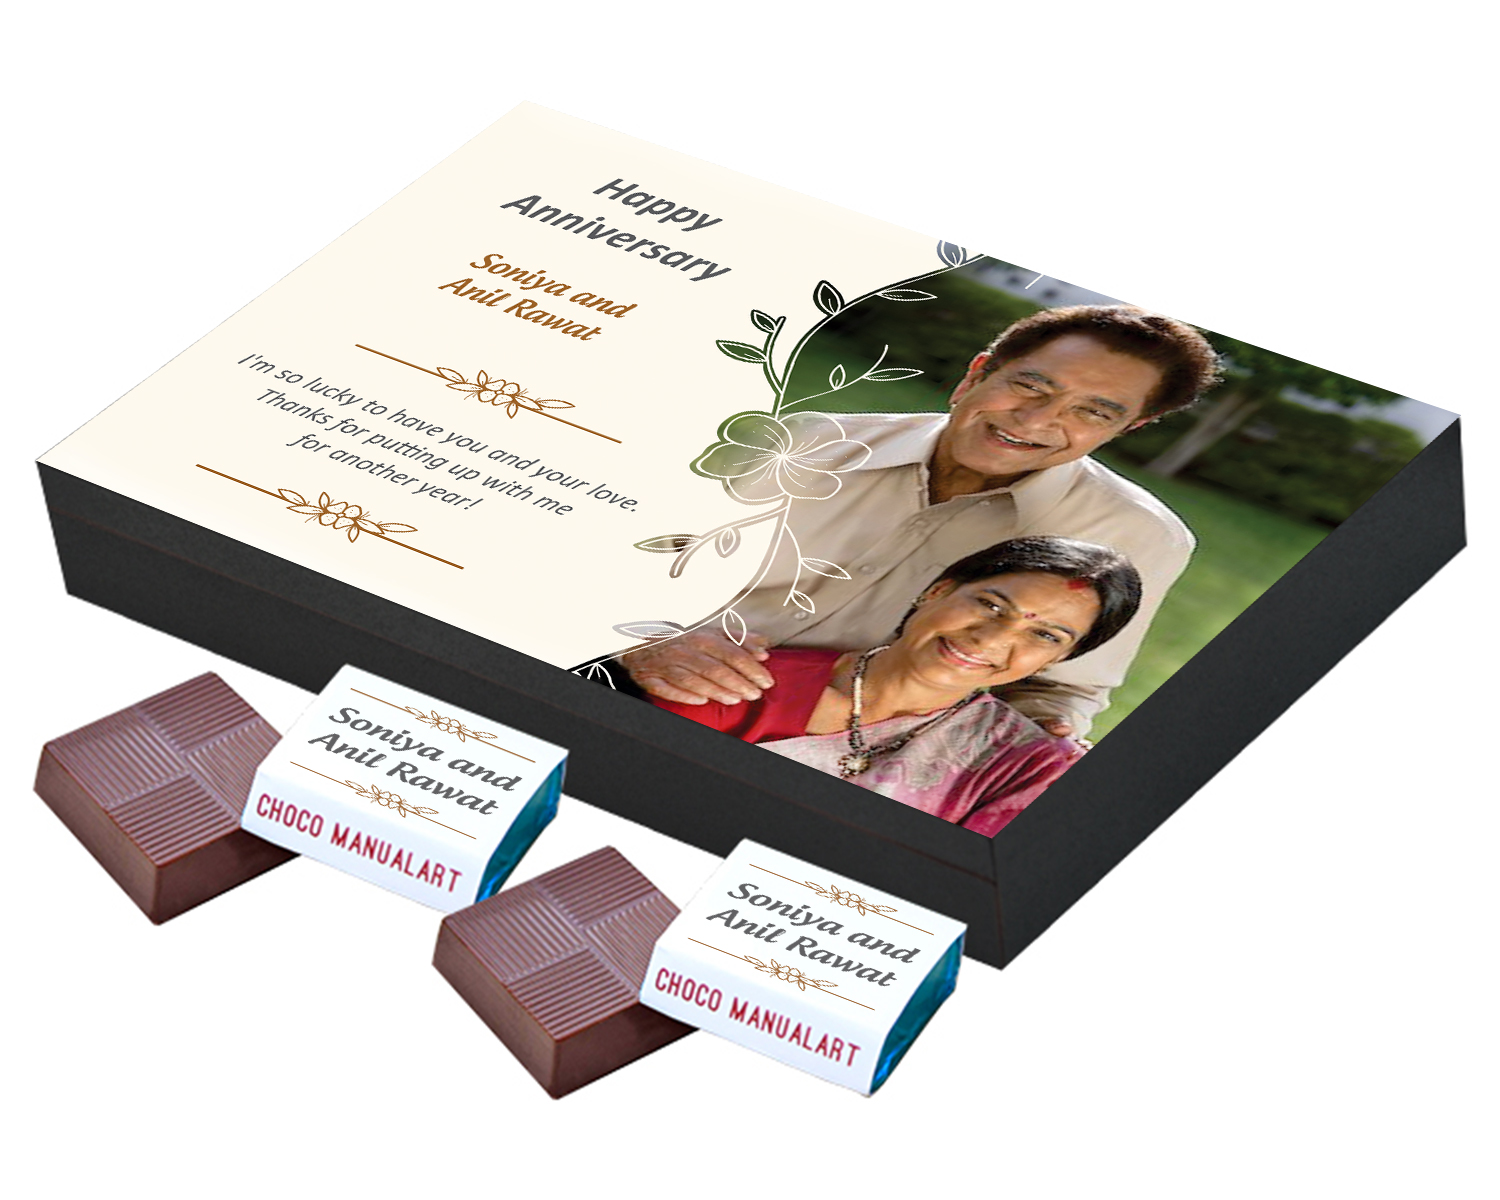 Customised Chocolate Box with Photo and Message  12pcs  Personalized Customized Chocolate Box with Photo